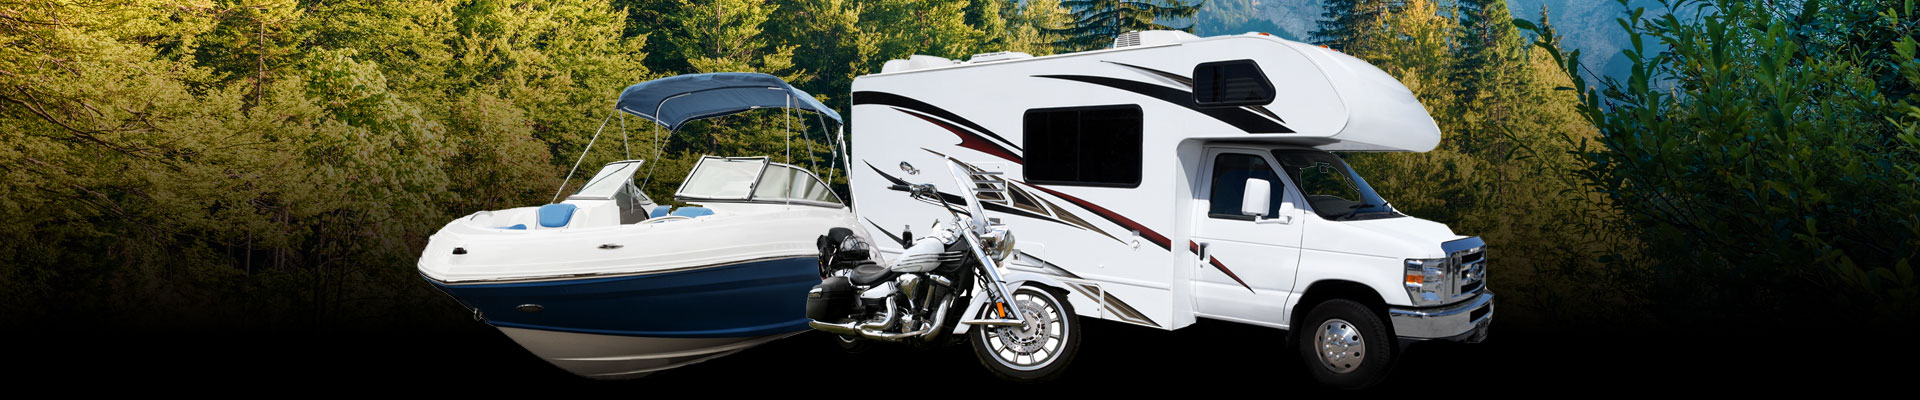 Motorcycle, boat, RV